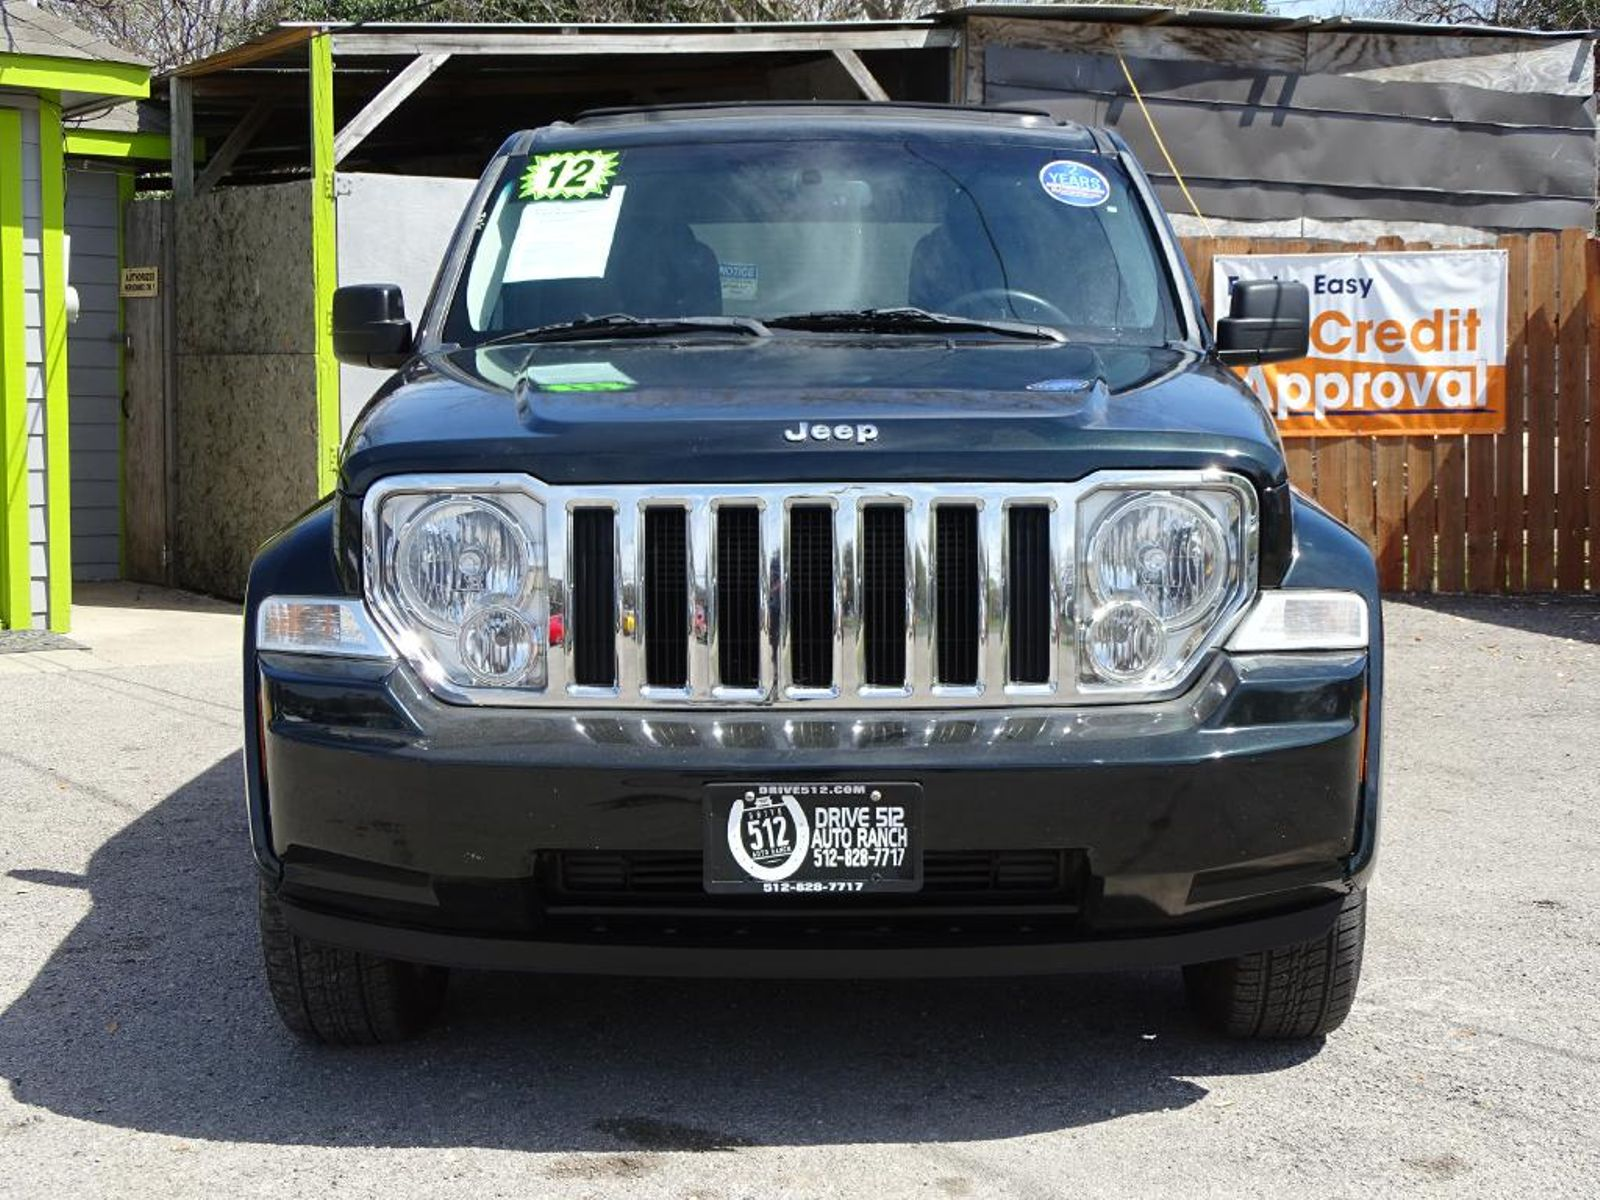 original awesome renegade img jeep jpg threads or austin tx trade fs